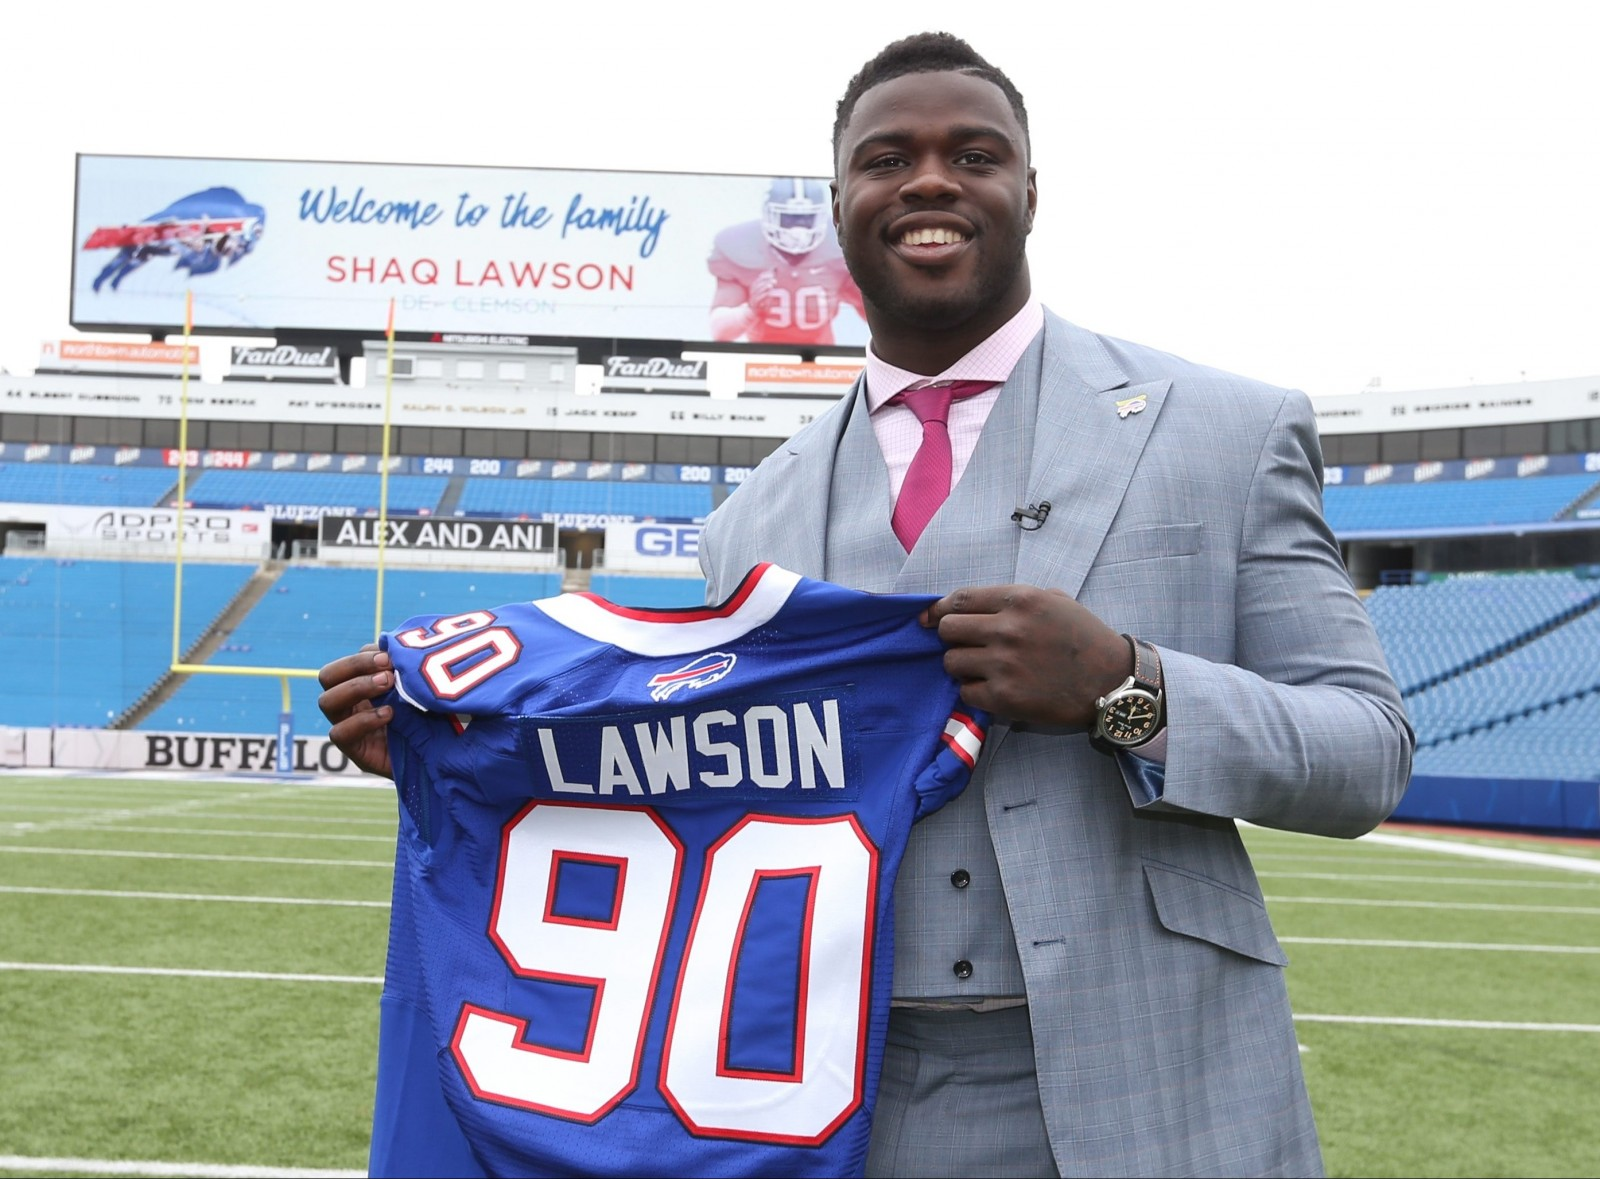 Shaq Lawson posed for pictures during his introduction to Buffalo a day after being drafted. (James P. McCoy/Buffalo News)